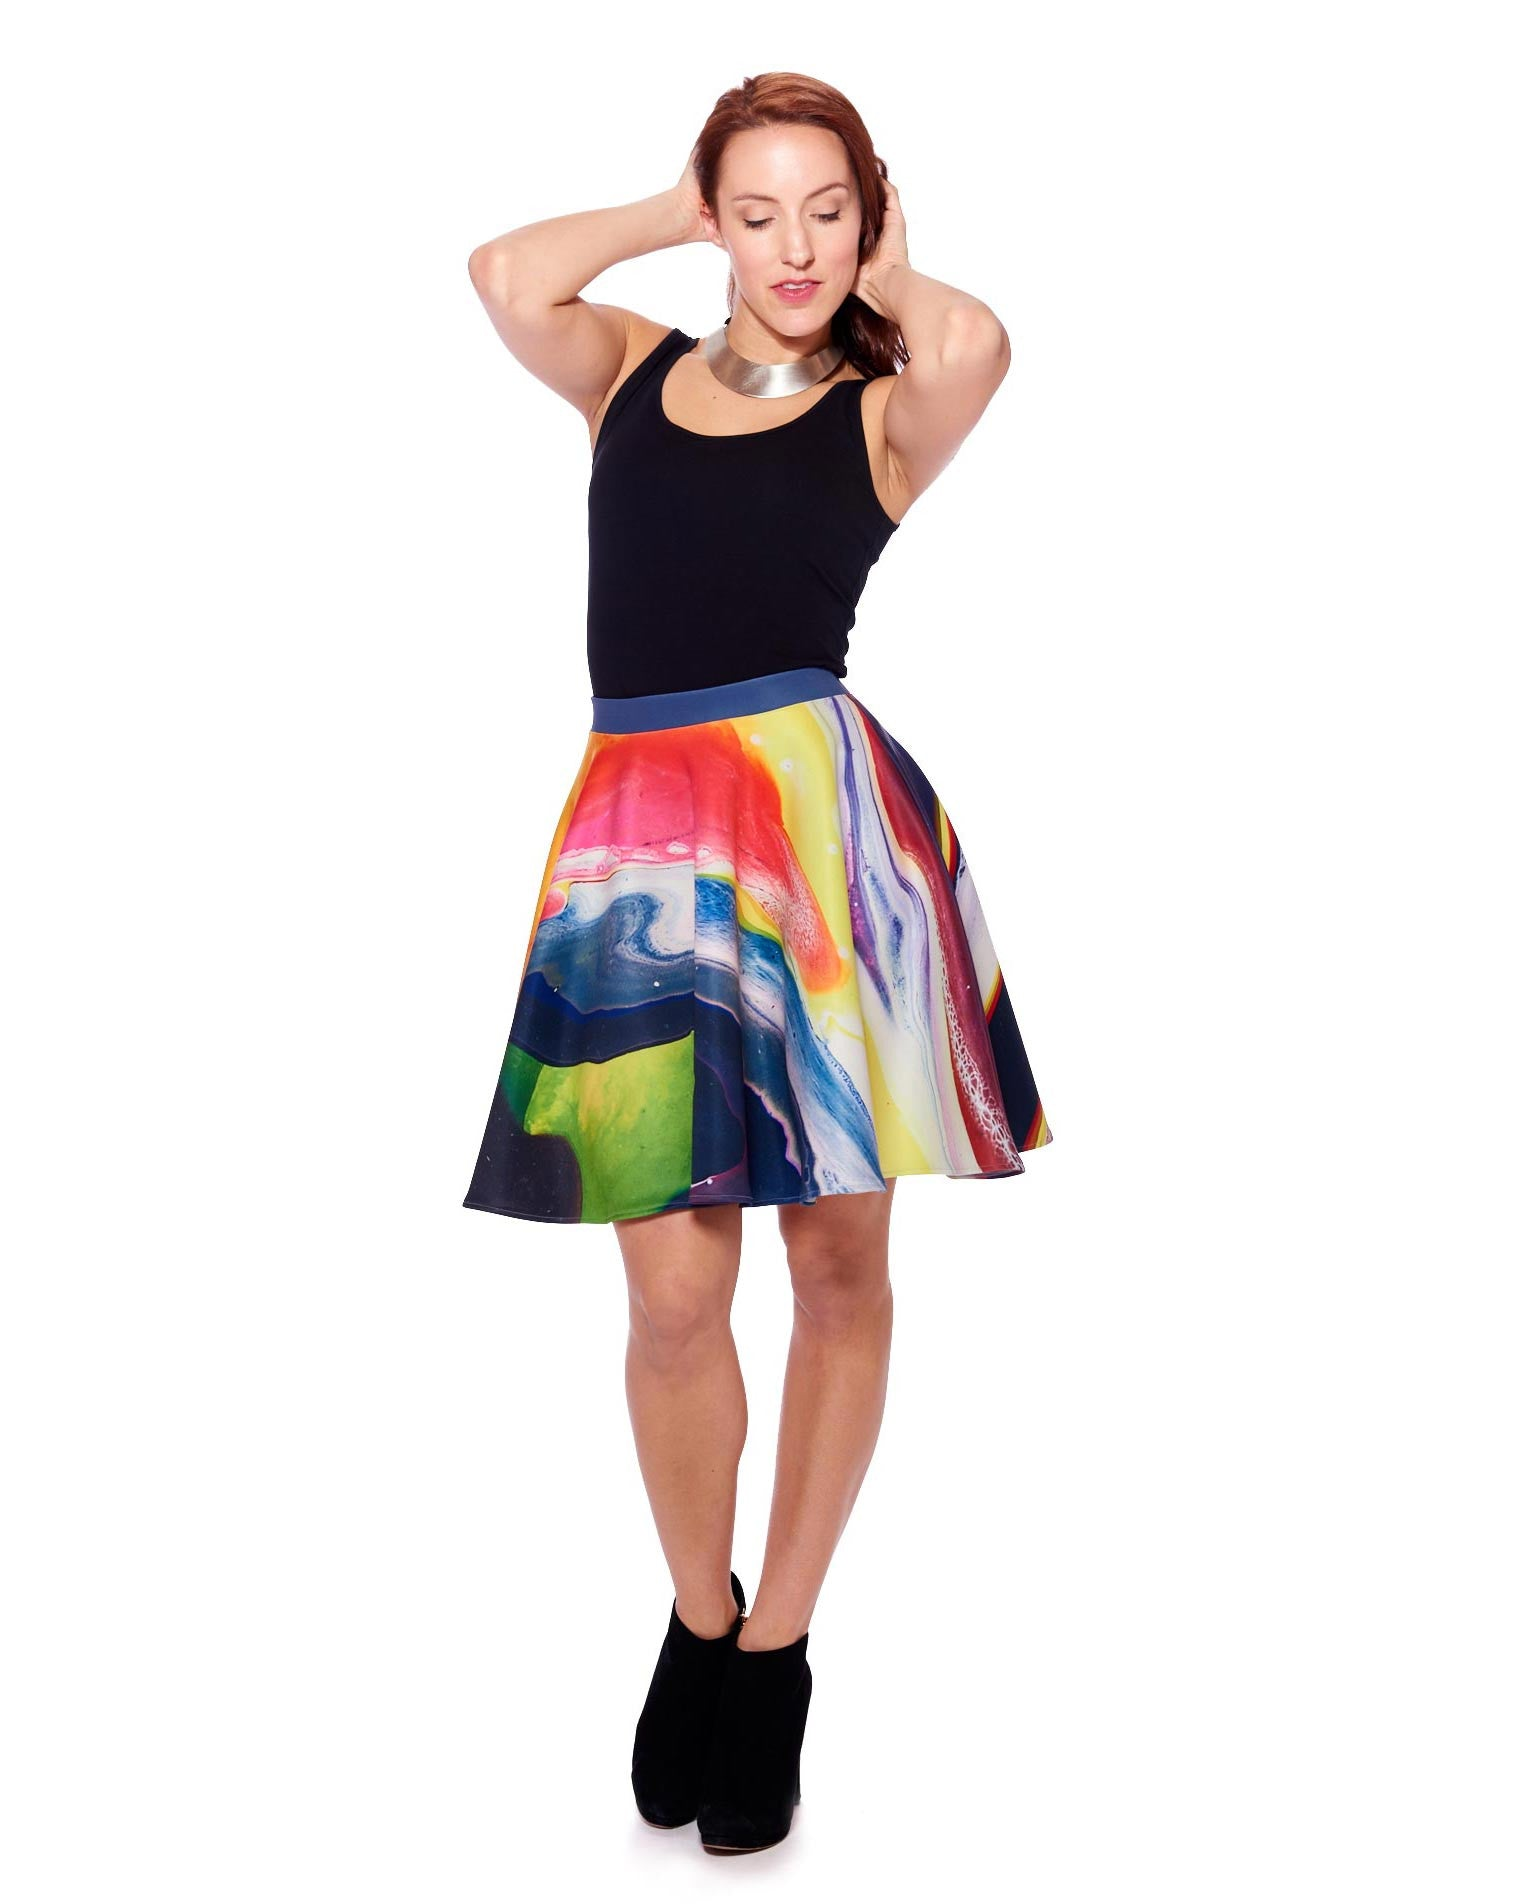 New Planet II Circle Skirt - Nuvango Gallery & Goods - 4